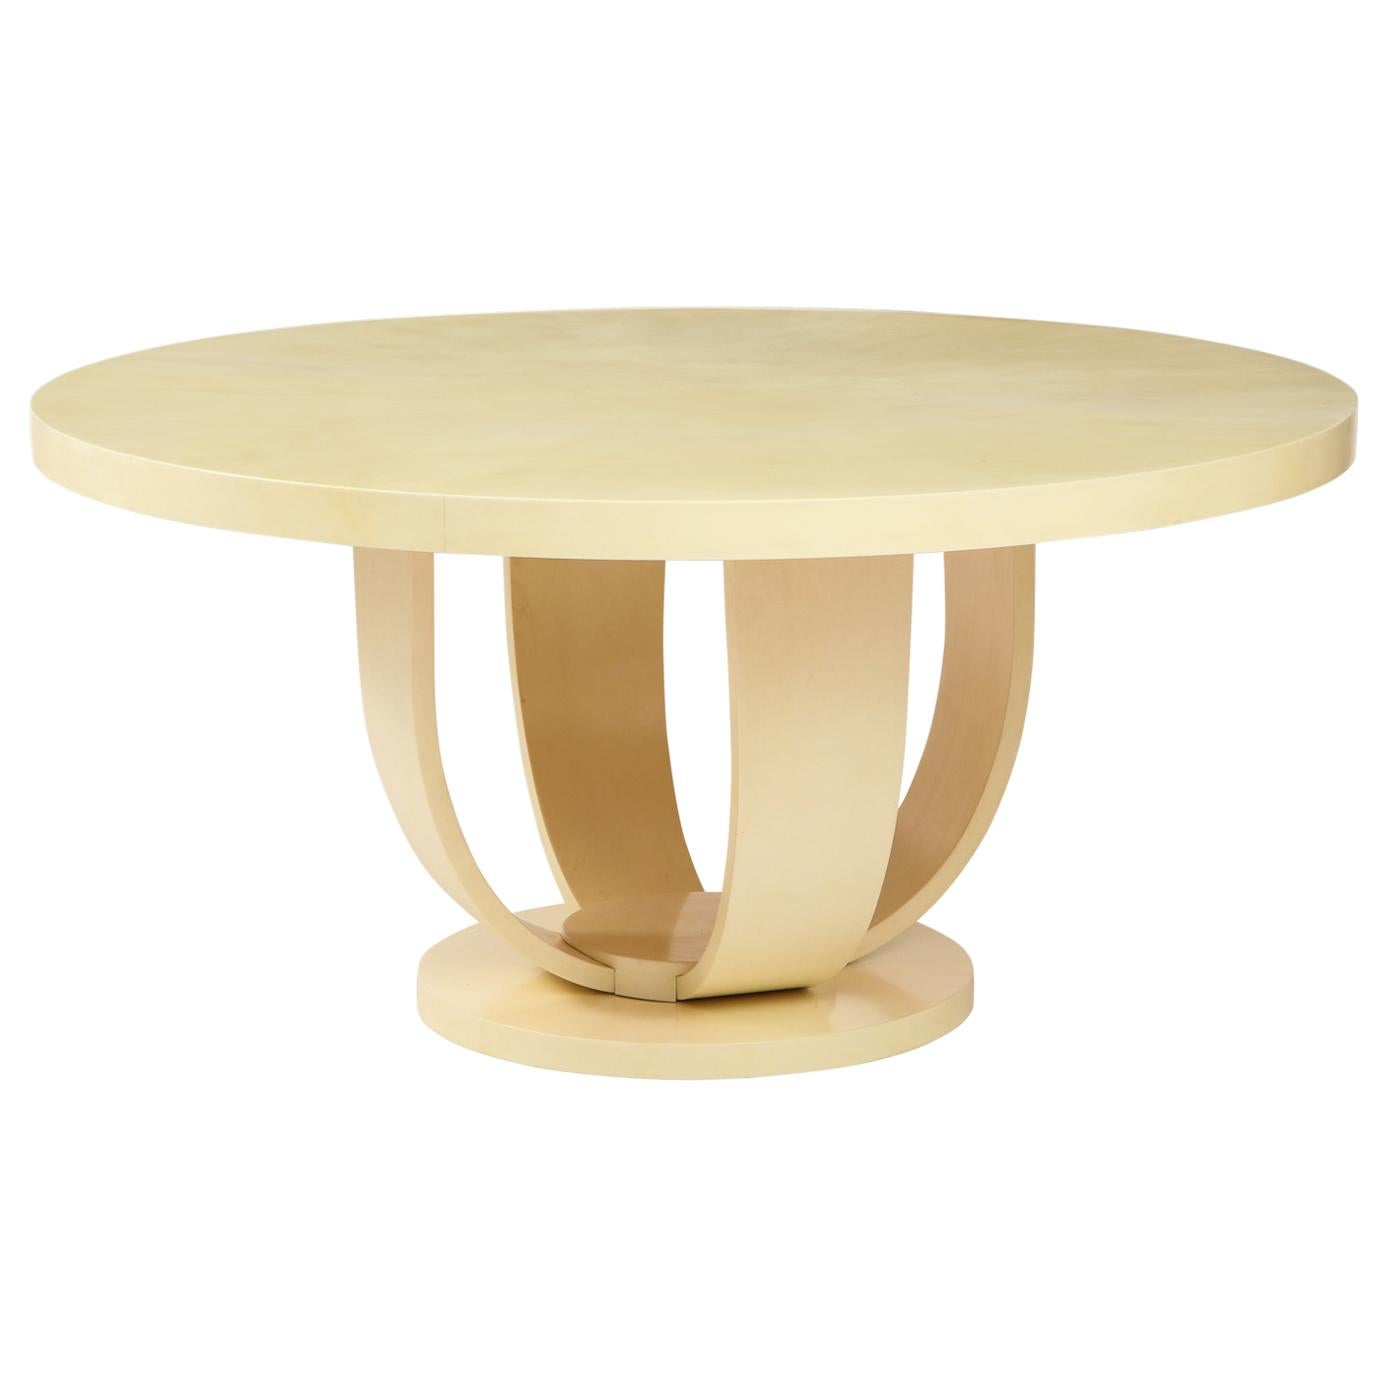 Aldo Tura Unique Ivory Lacquered Goatskin Center or Dining Table, Italy, 1970s